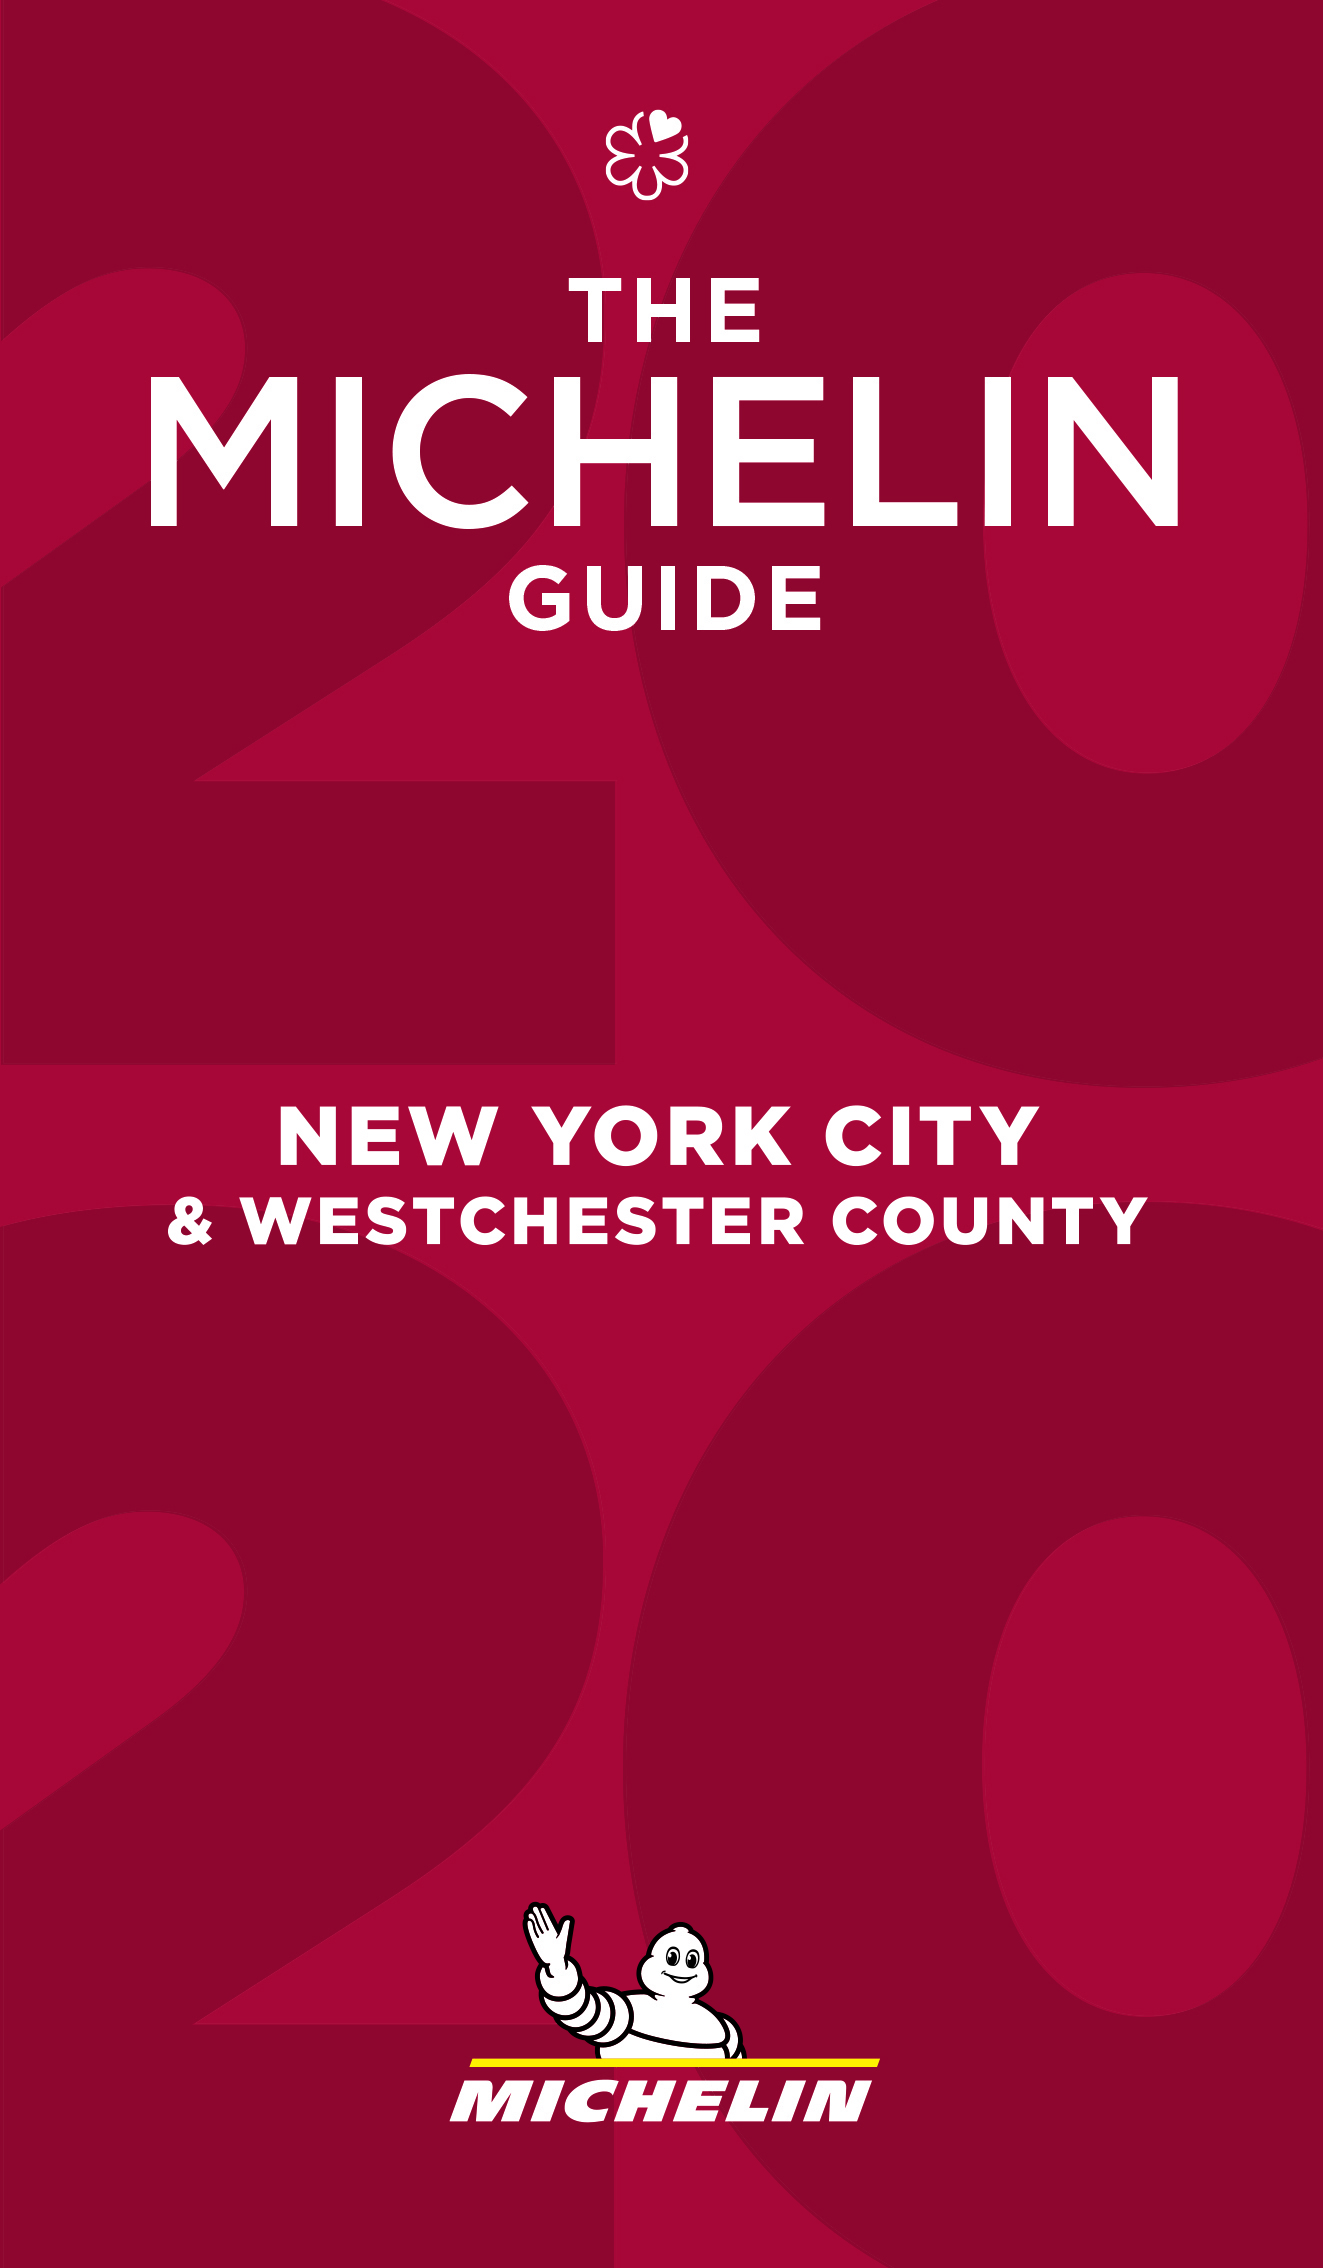 NEW-YORK - THE MICHELIN GUIDE 2020